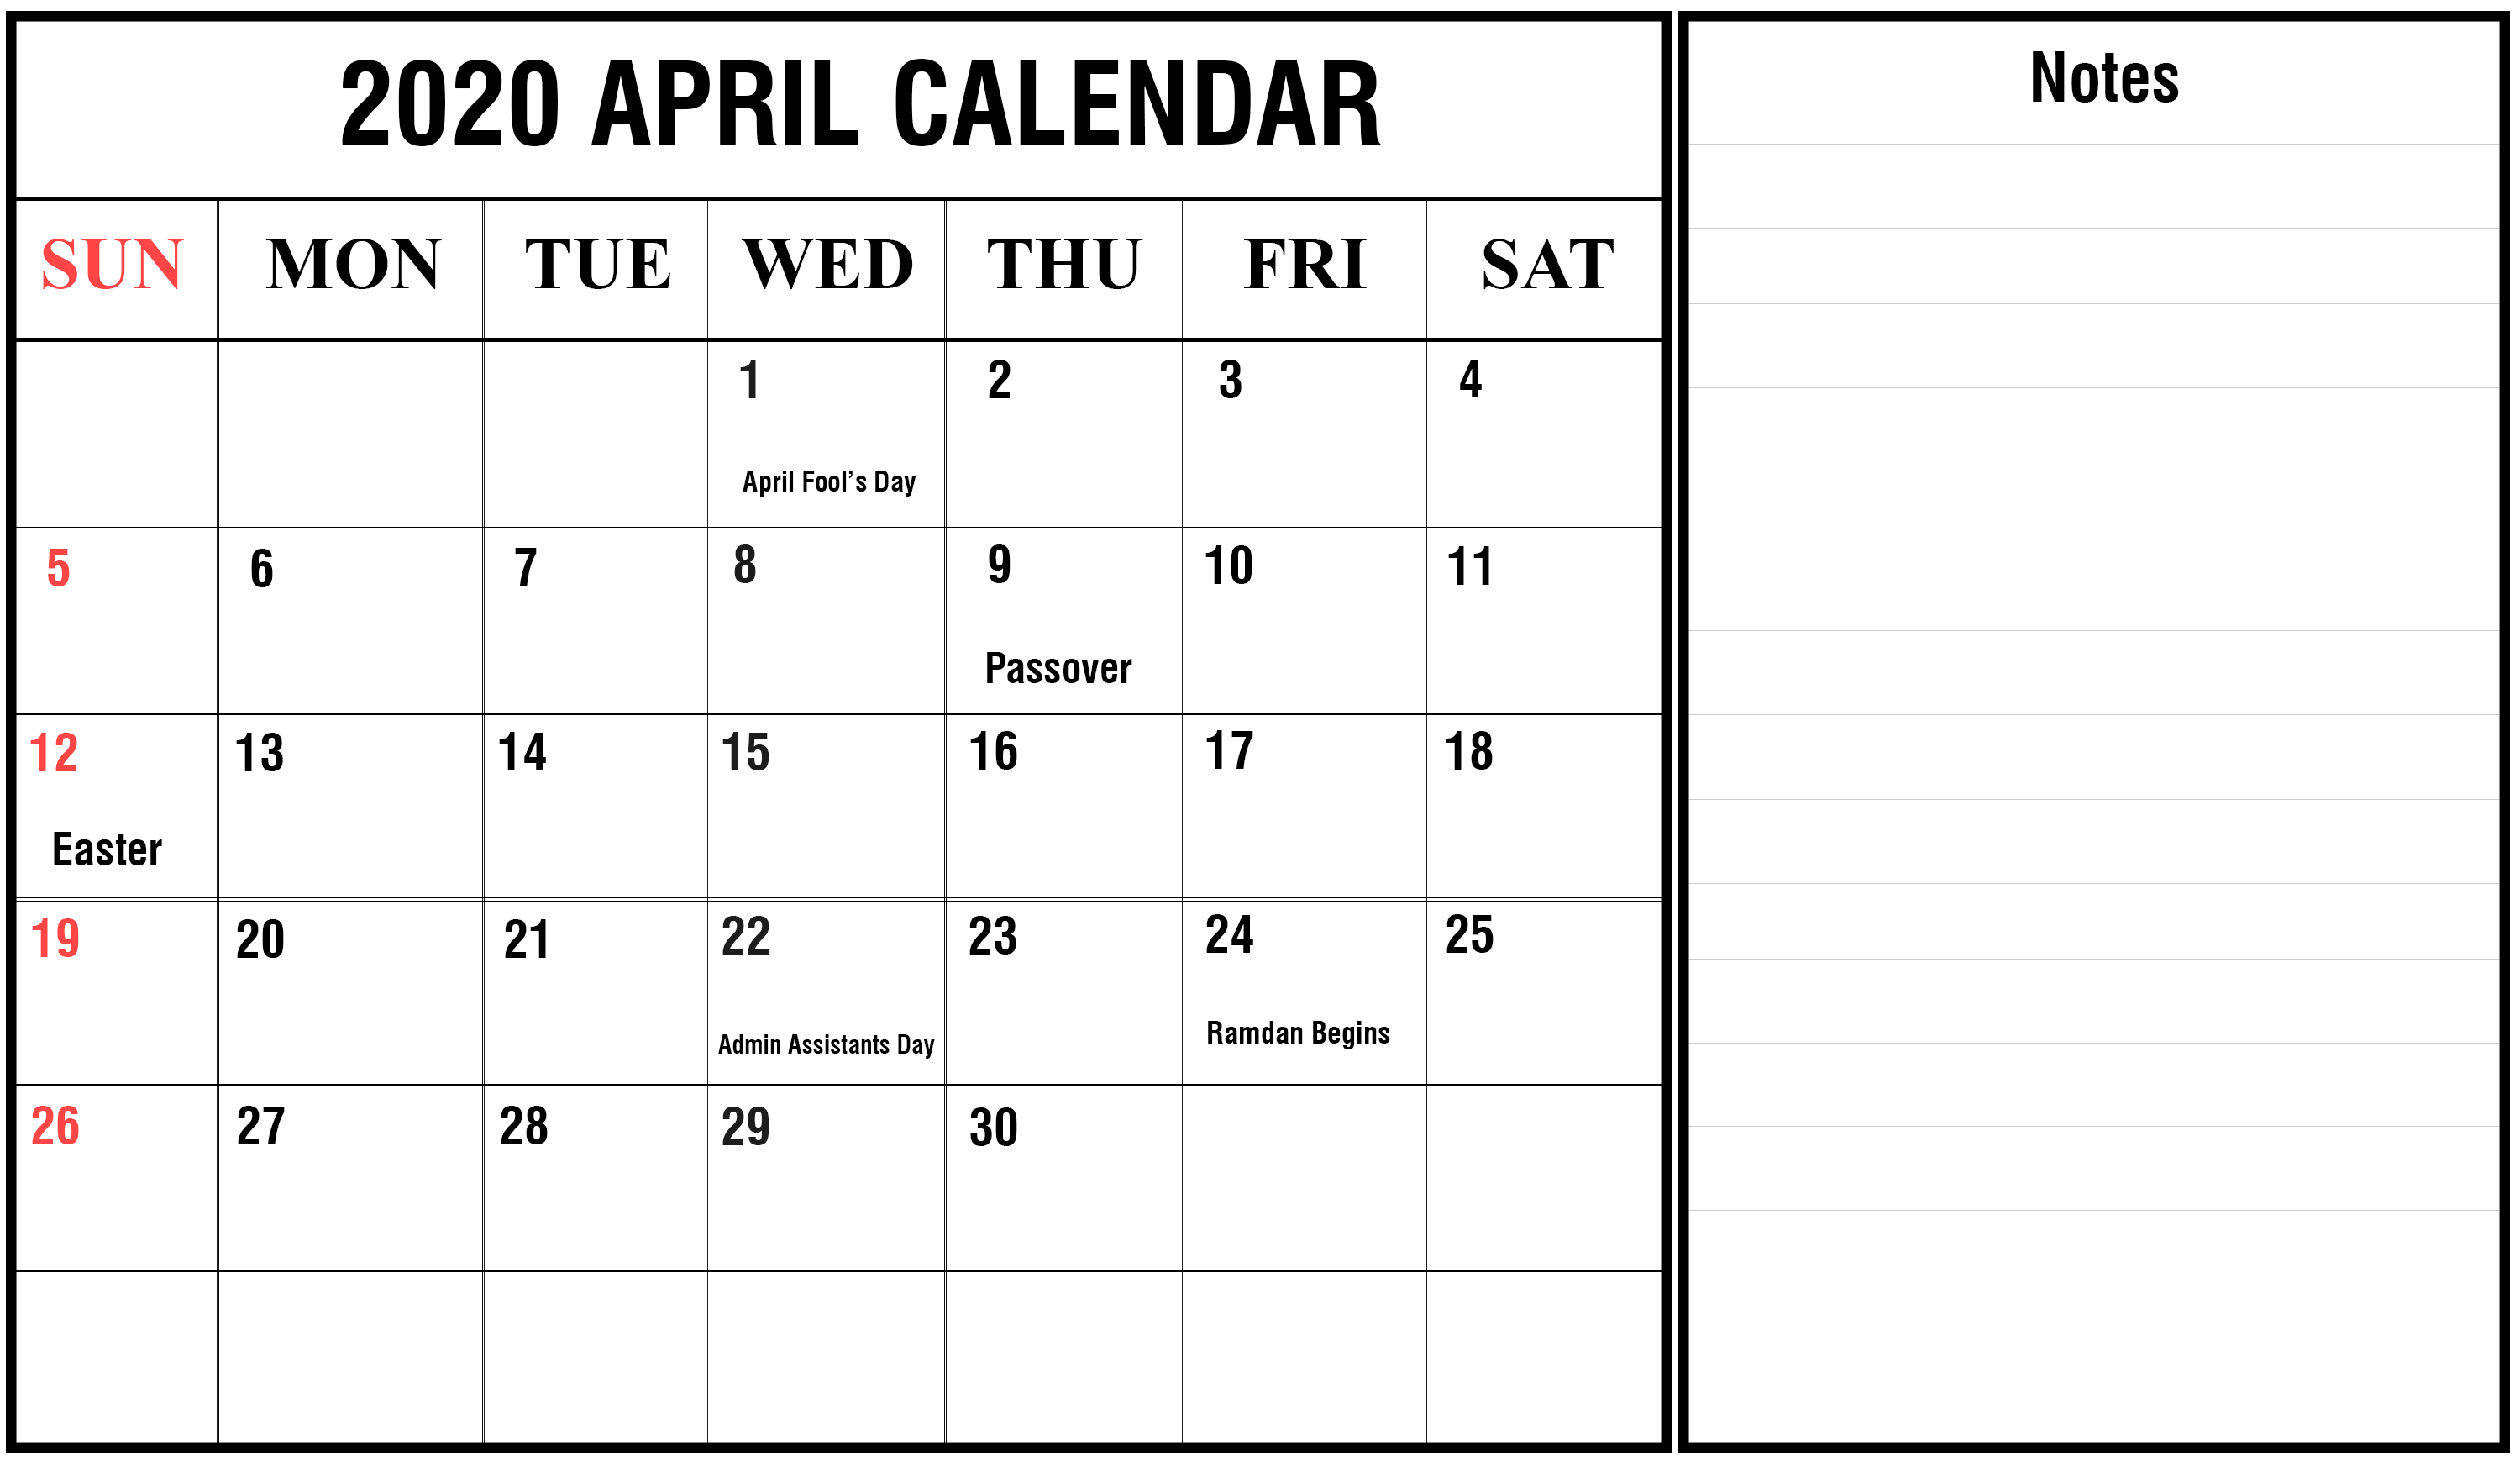 April 2020 Calendar with Holidays